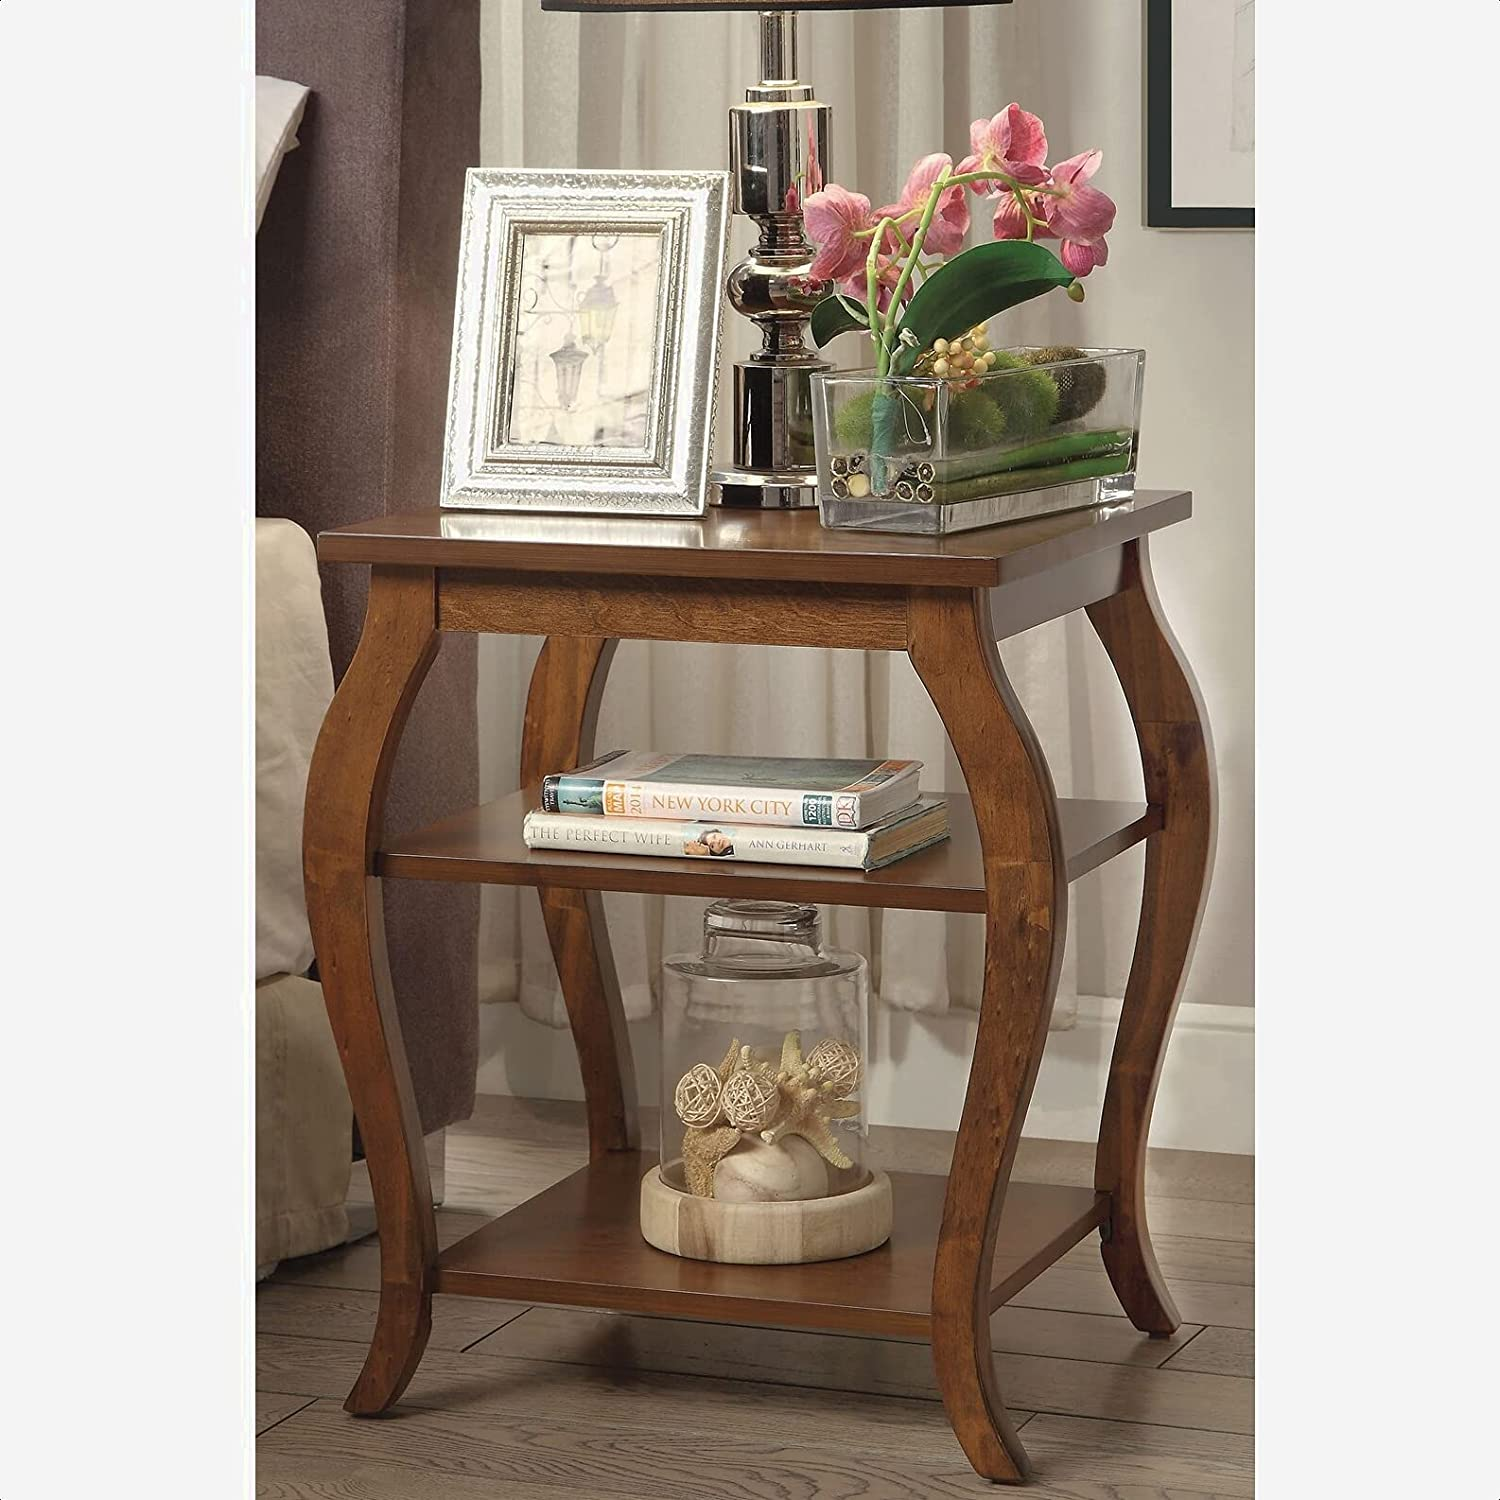 Sturdevant Max 65% OFF Direct sale of manufacturer End Table with Storage Warranty Year 1 Coun Length: